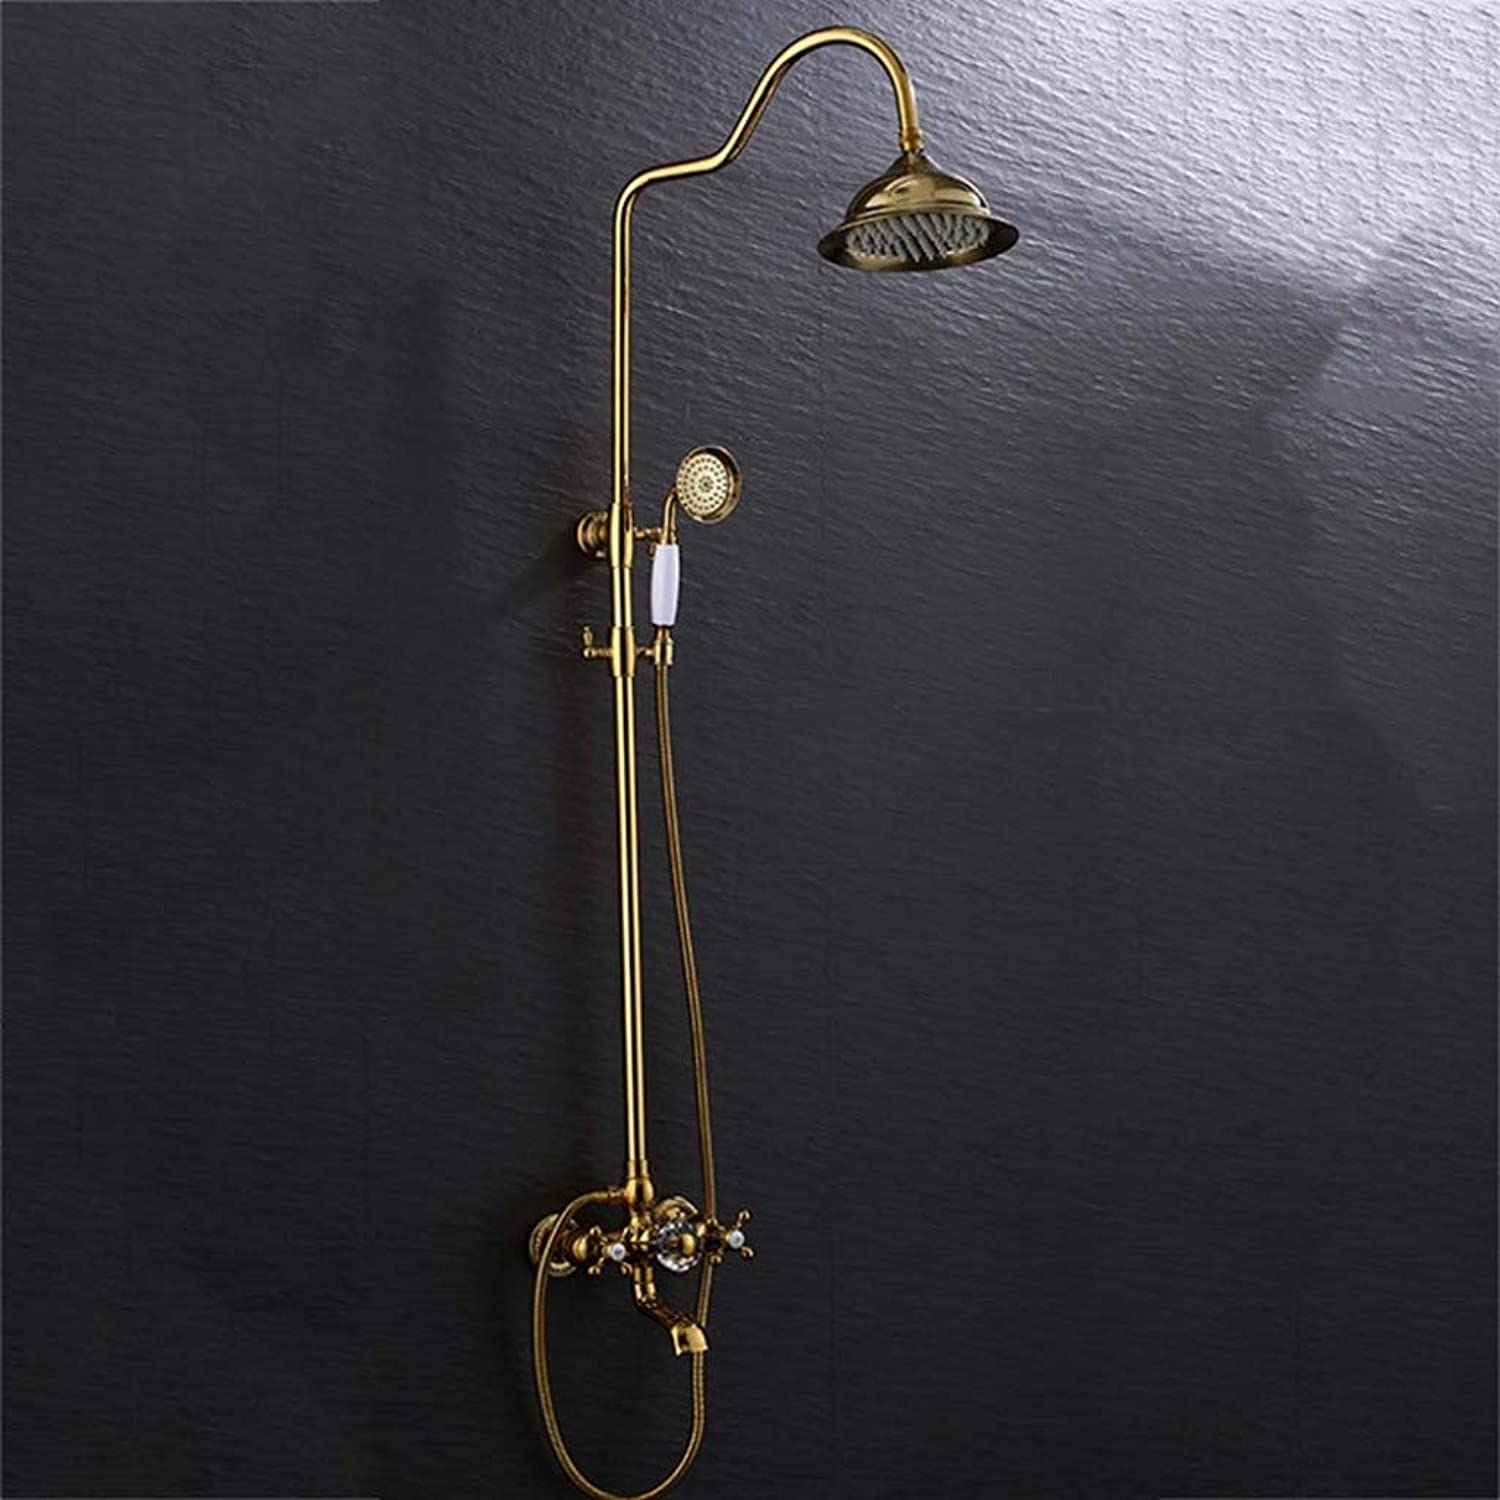 LHW Shower Set, European, retro, lifting, redating, hot and cold mixing valve faucet, shower set